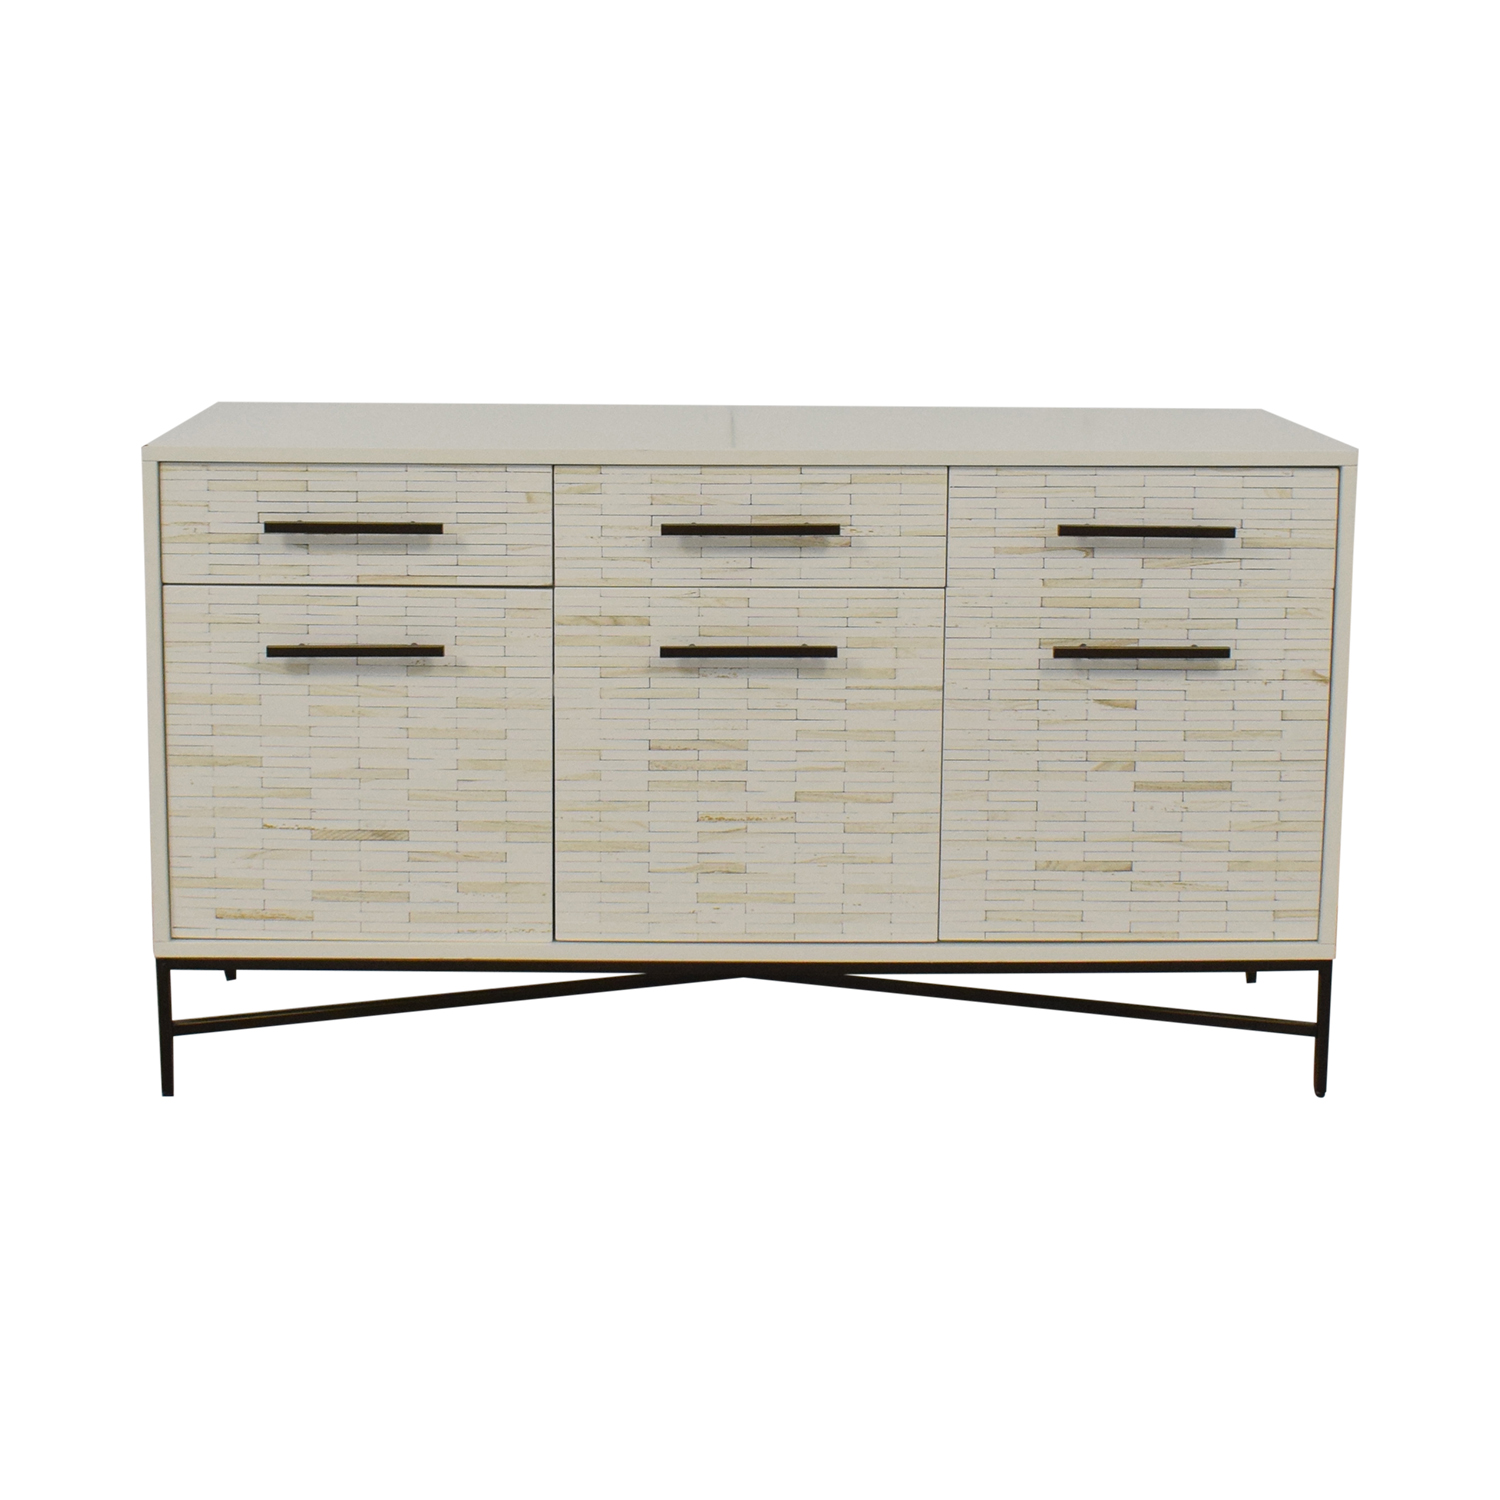 West Elm West Elm Tiled Media Console coupon